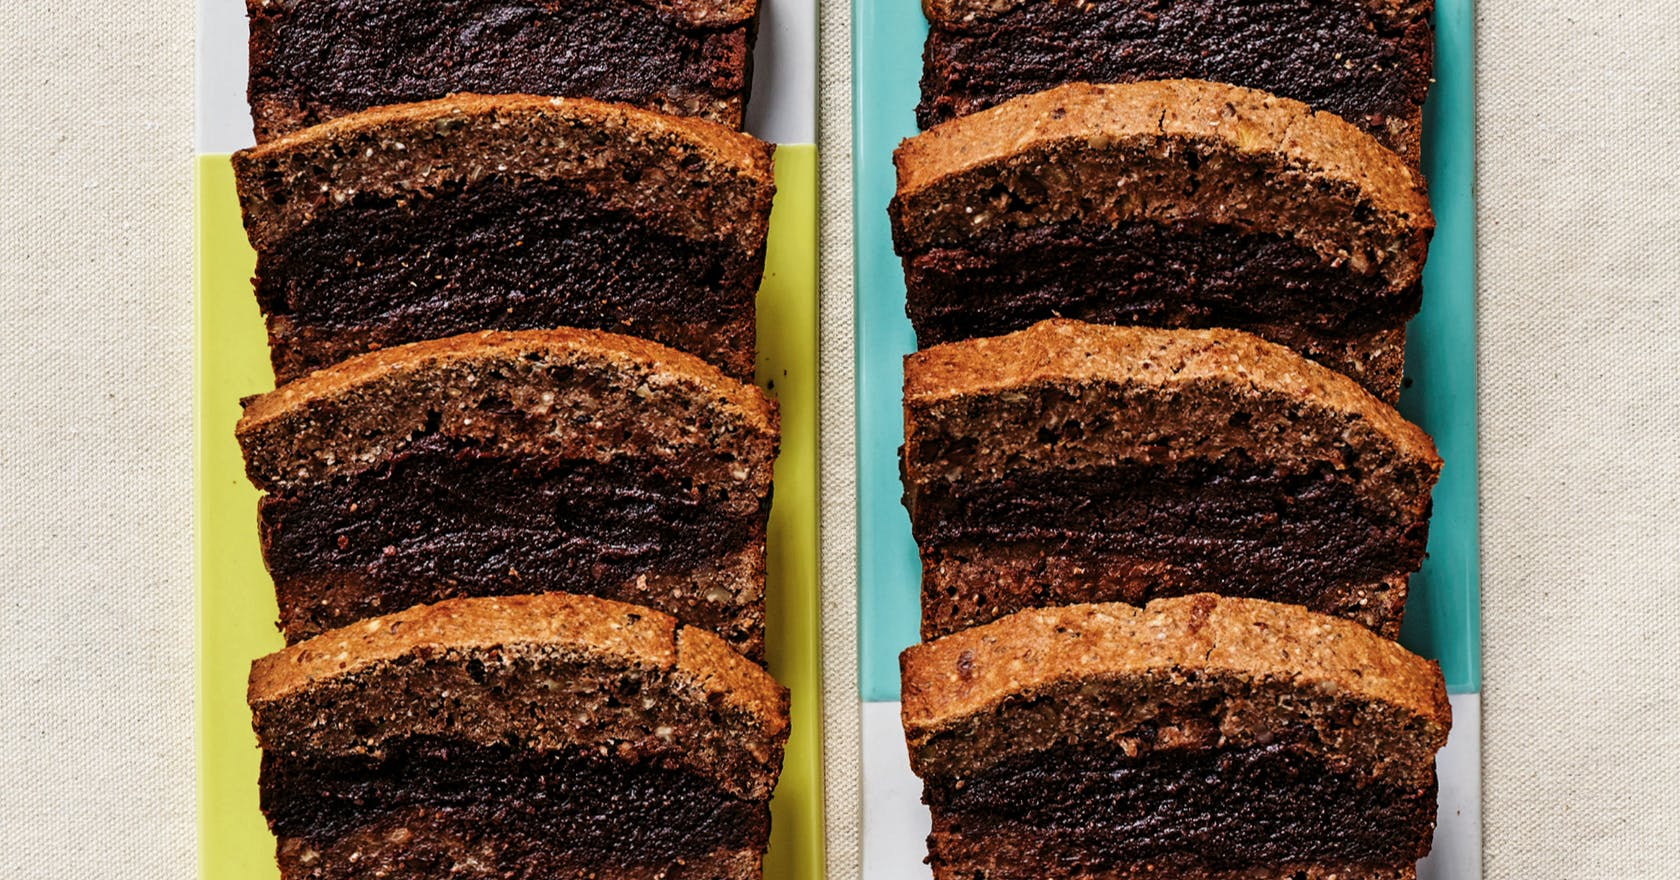 Vegan banana bread recipe: boost energy with this chocolate-stuffed loaf